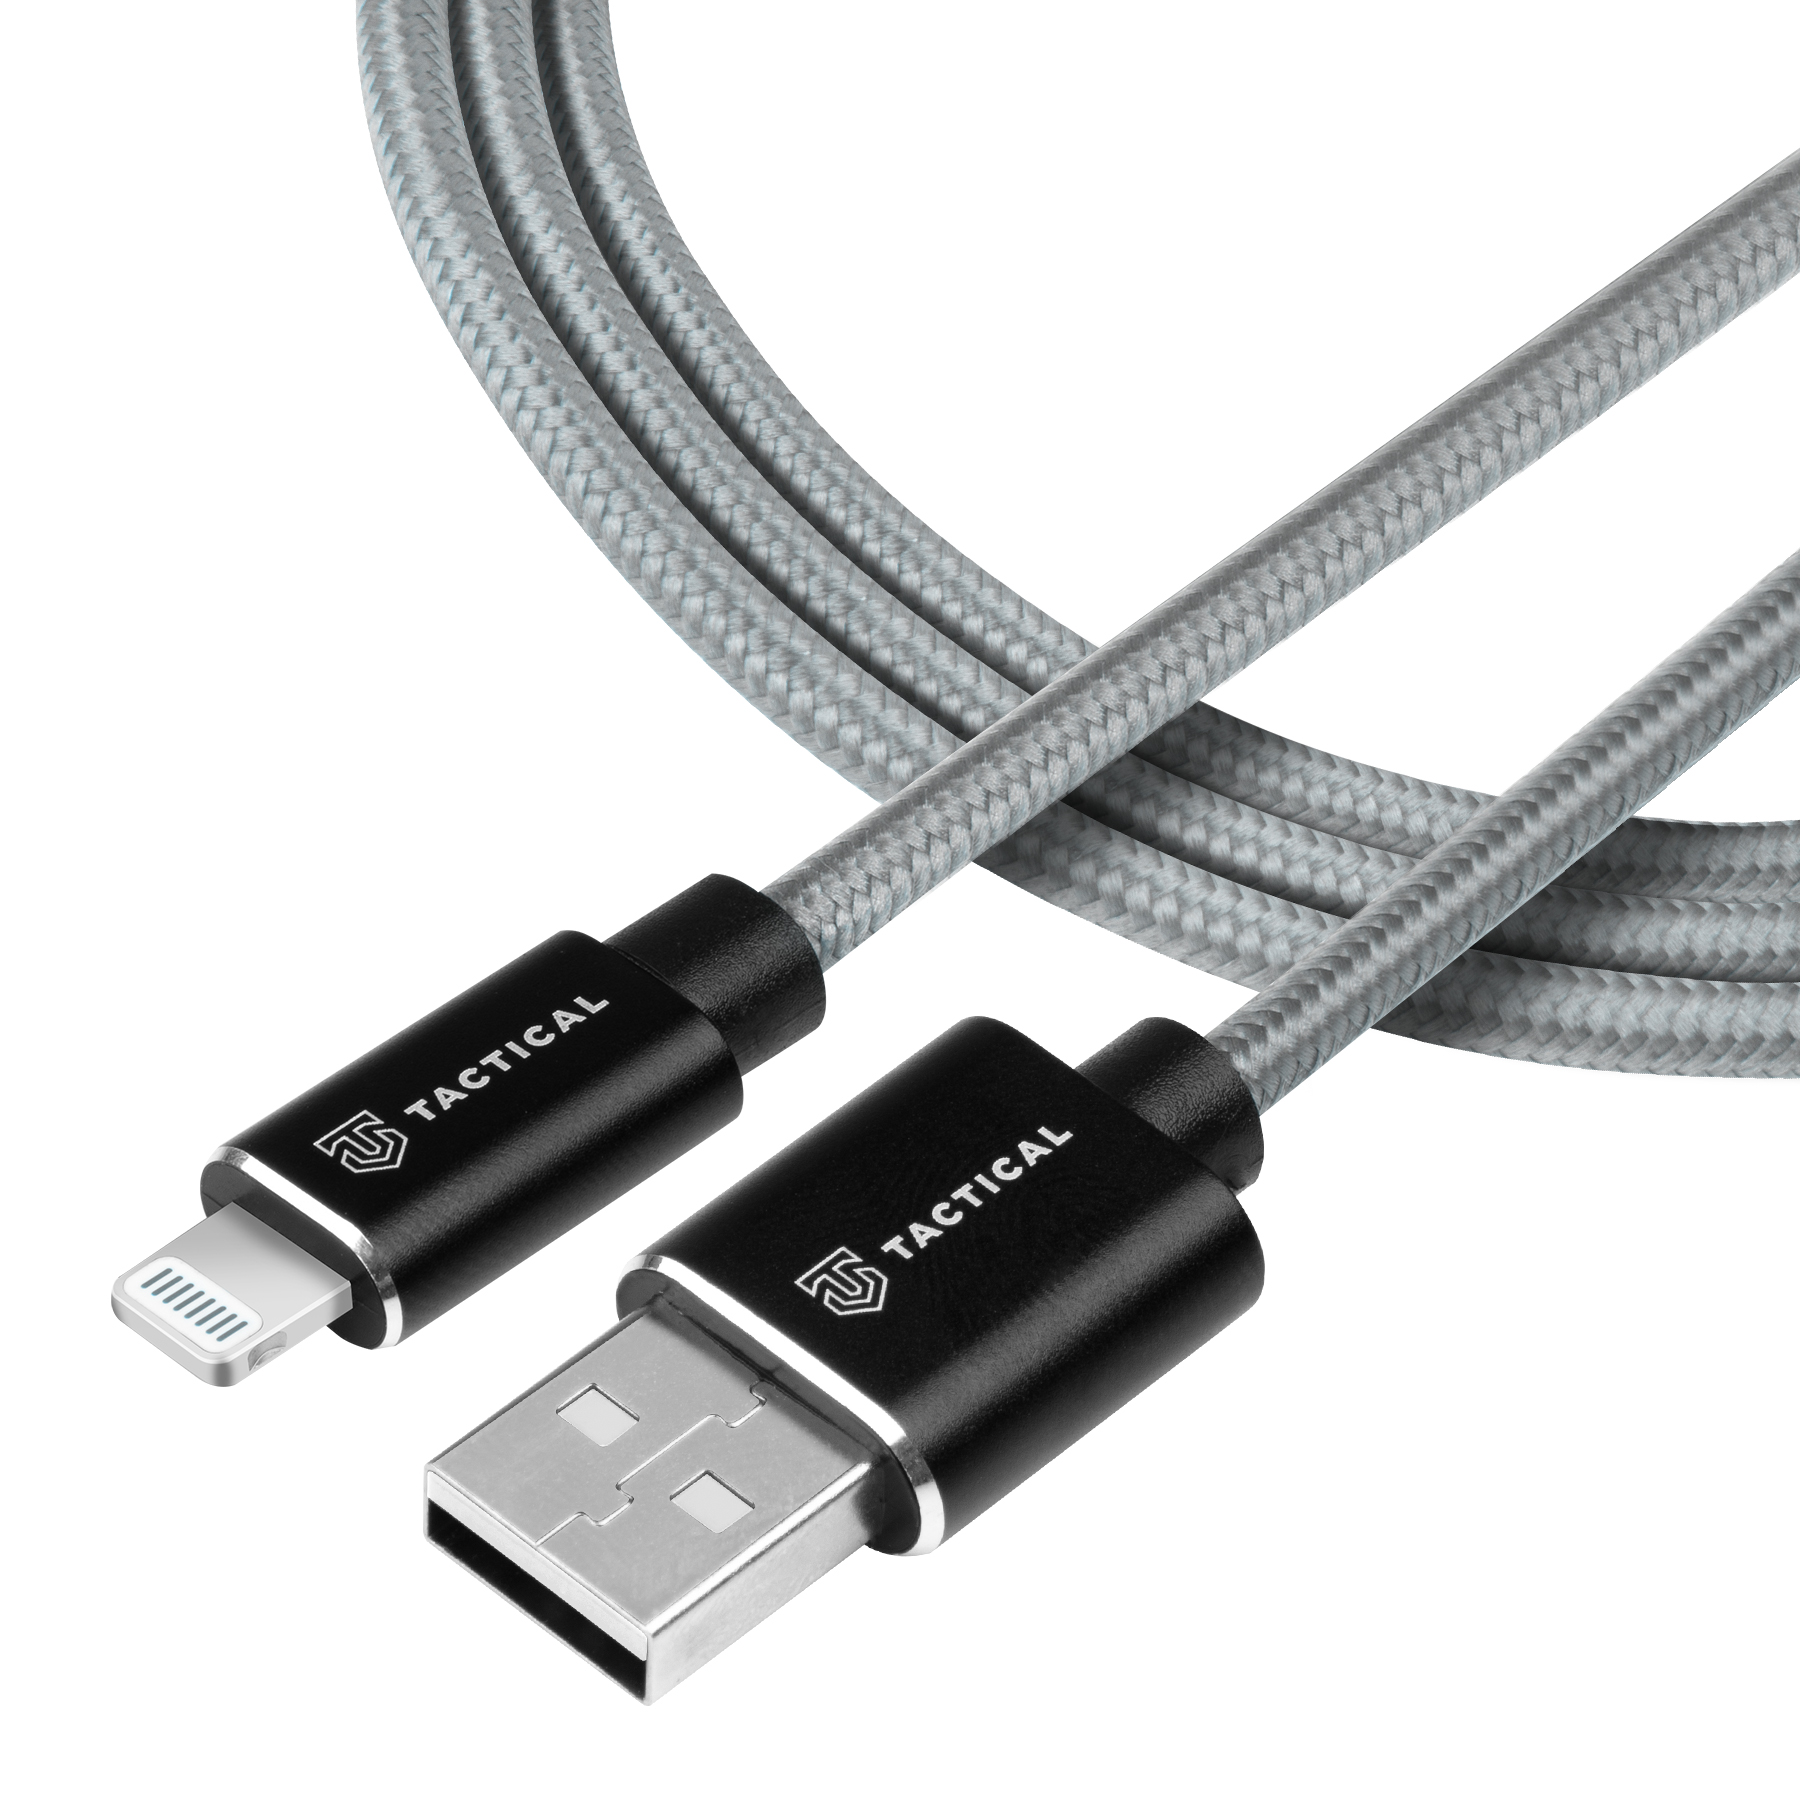 Tactical Fast Rope Aramid Cable USB-A/Lightning MFI 0.3m Grey 8596311153167